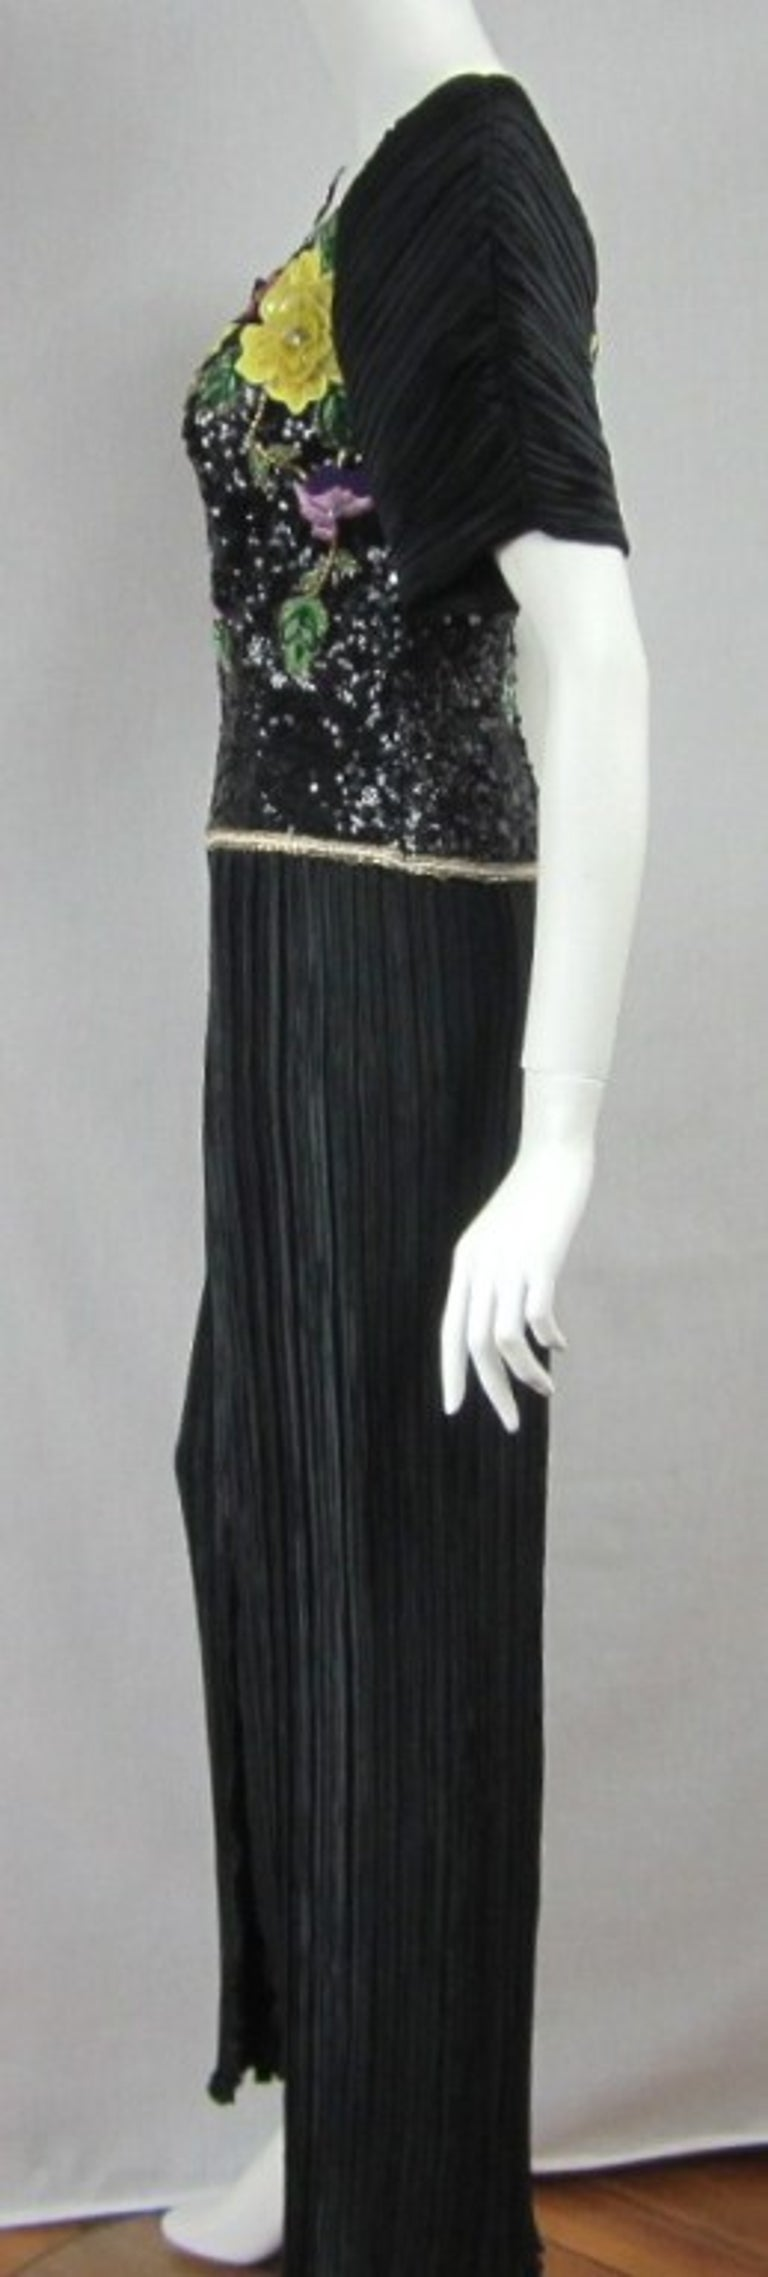 Richilene Black Floral Sequined Sculptured Gown 1990s For Sale 4